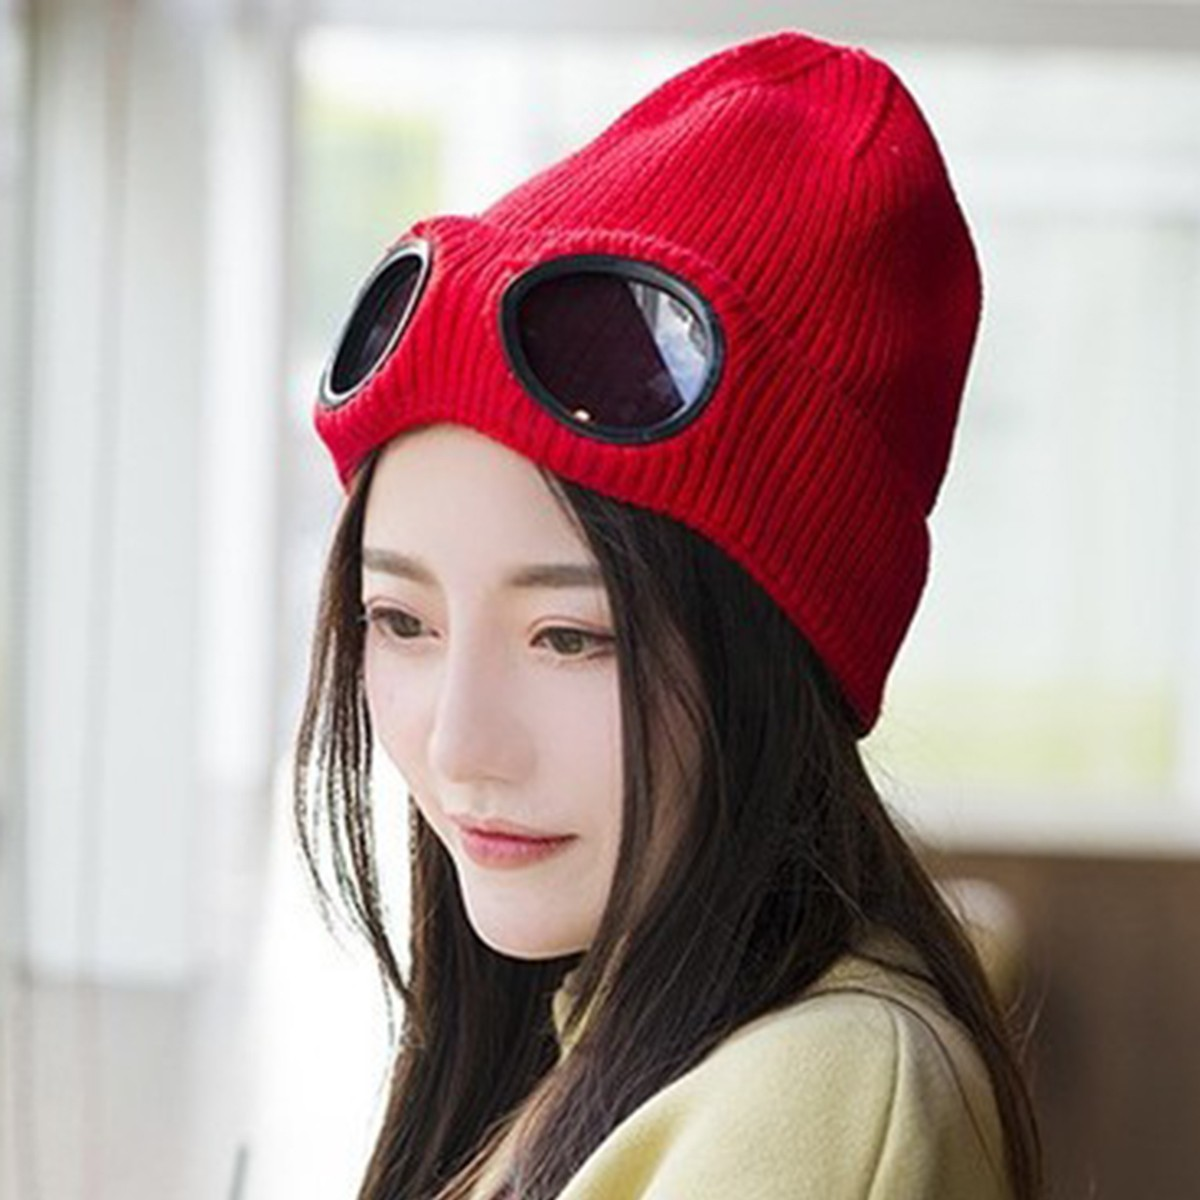 2019 Fashion Double-use Thickened Winter Knitted Hat Warm Beanies Skullies Ski Cap With Removable Glasses For Men Women Cap